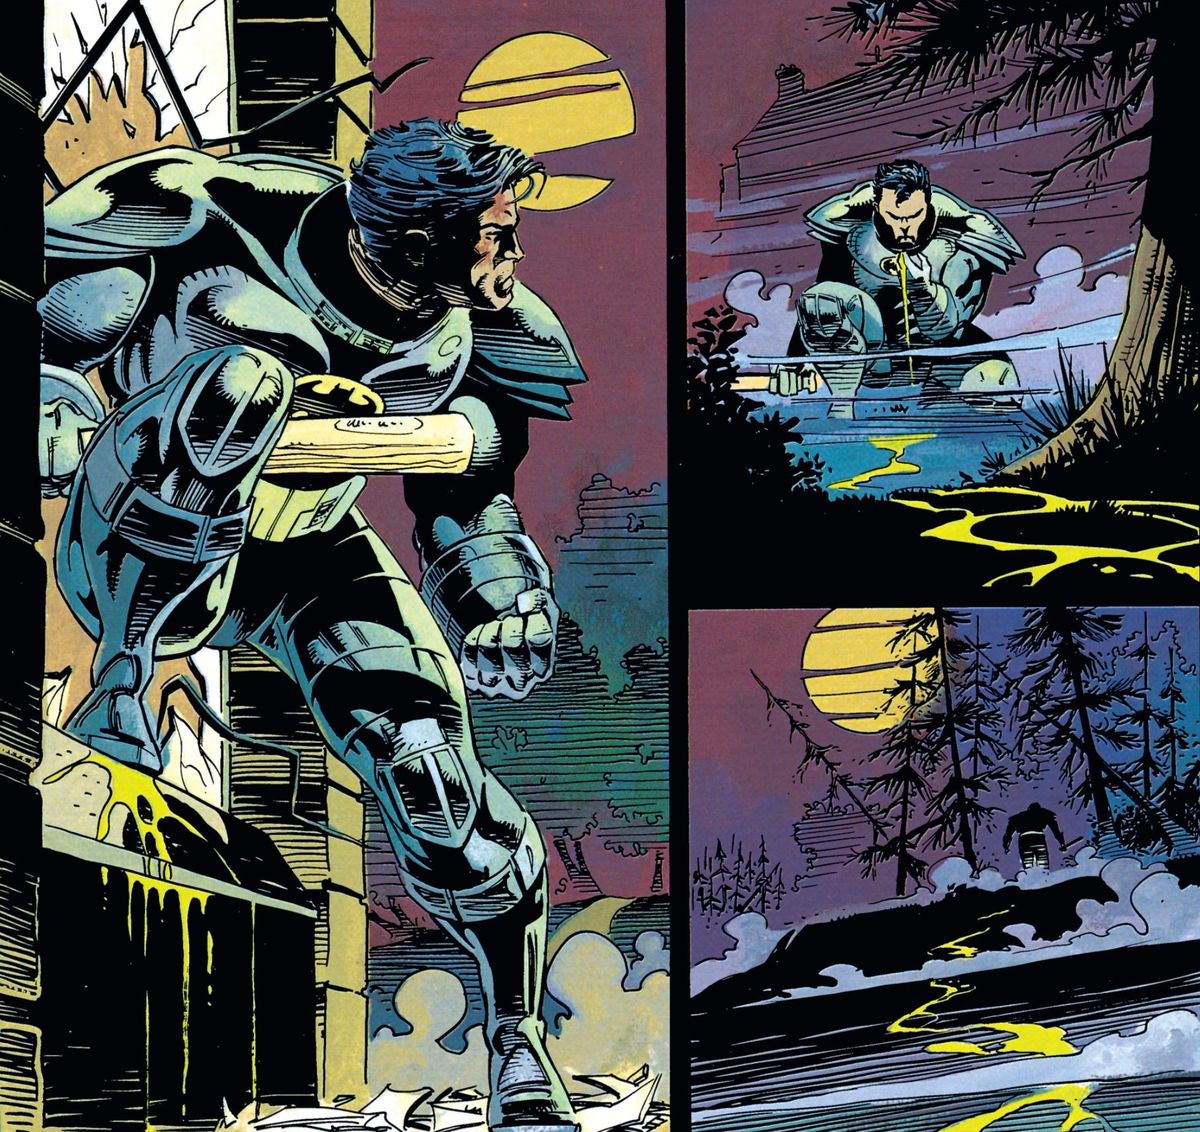 Helmet off, an exosuited Batman steps out of a smashed ground floor window of Wayne Manor into a night lit only by a bright yellow moon. Baseball bat gripped in his right hand, he examines a trail of livid yellow blood, and follows it into the woods in Batman vs. Predator #3, DC Comics (1991).